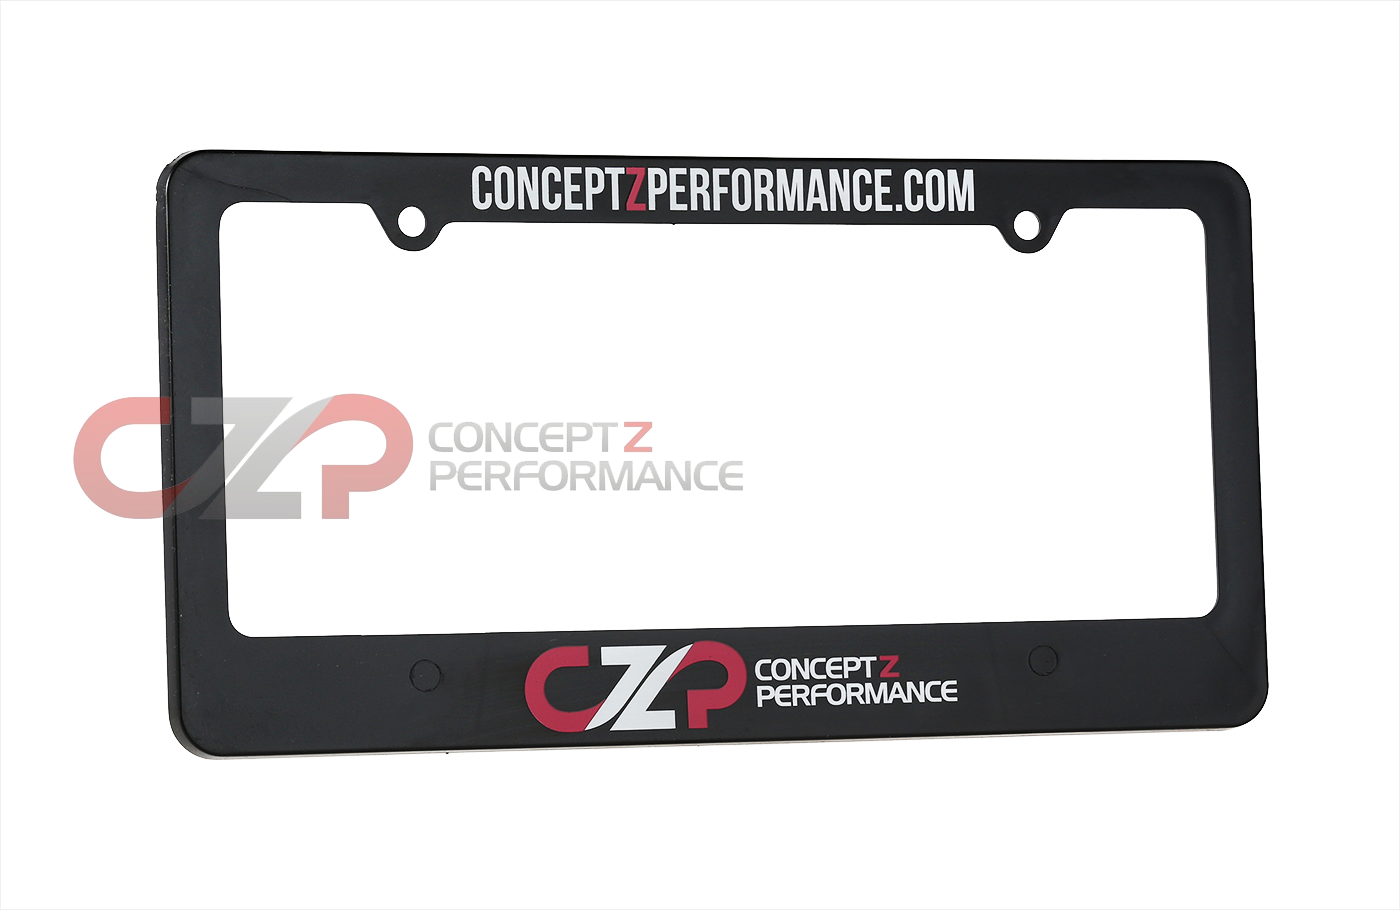 Concept Z Performance CZP License Plate Frame